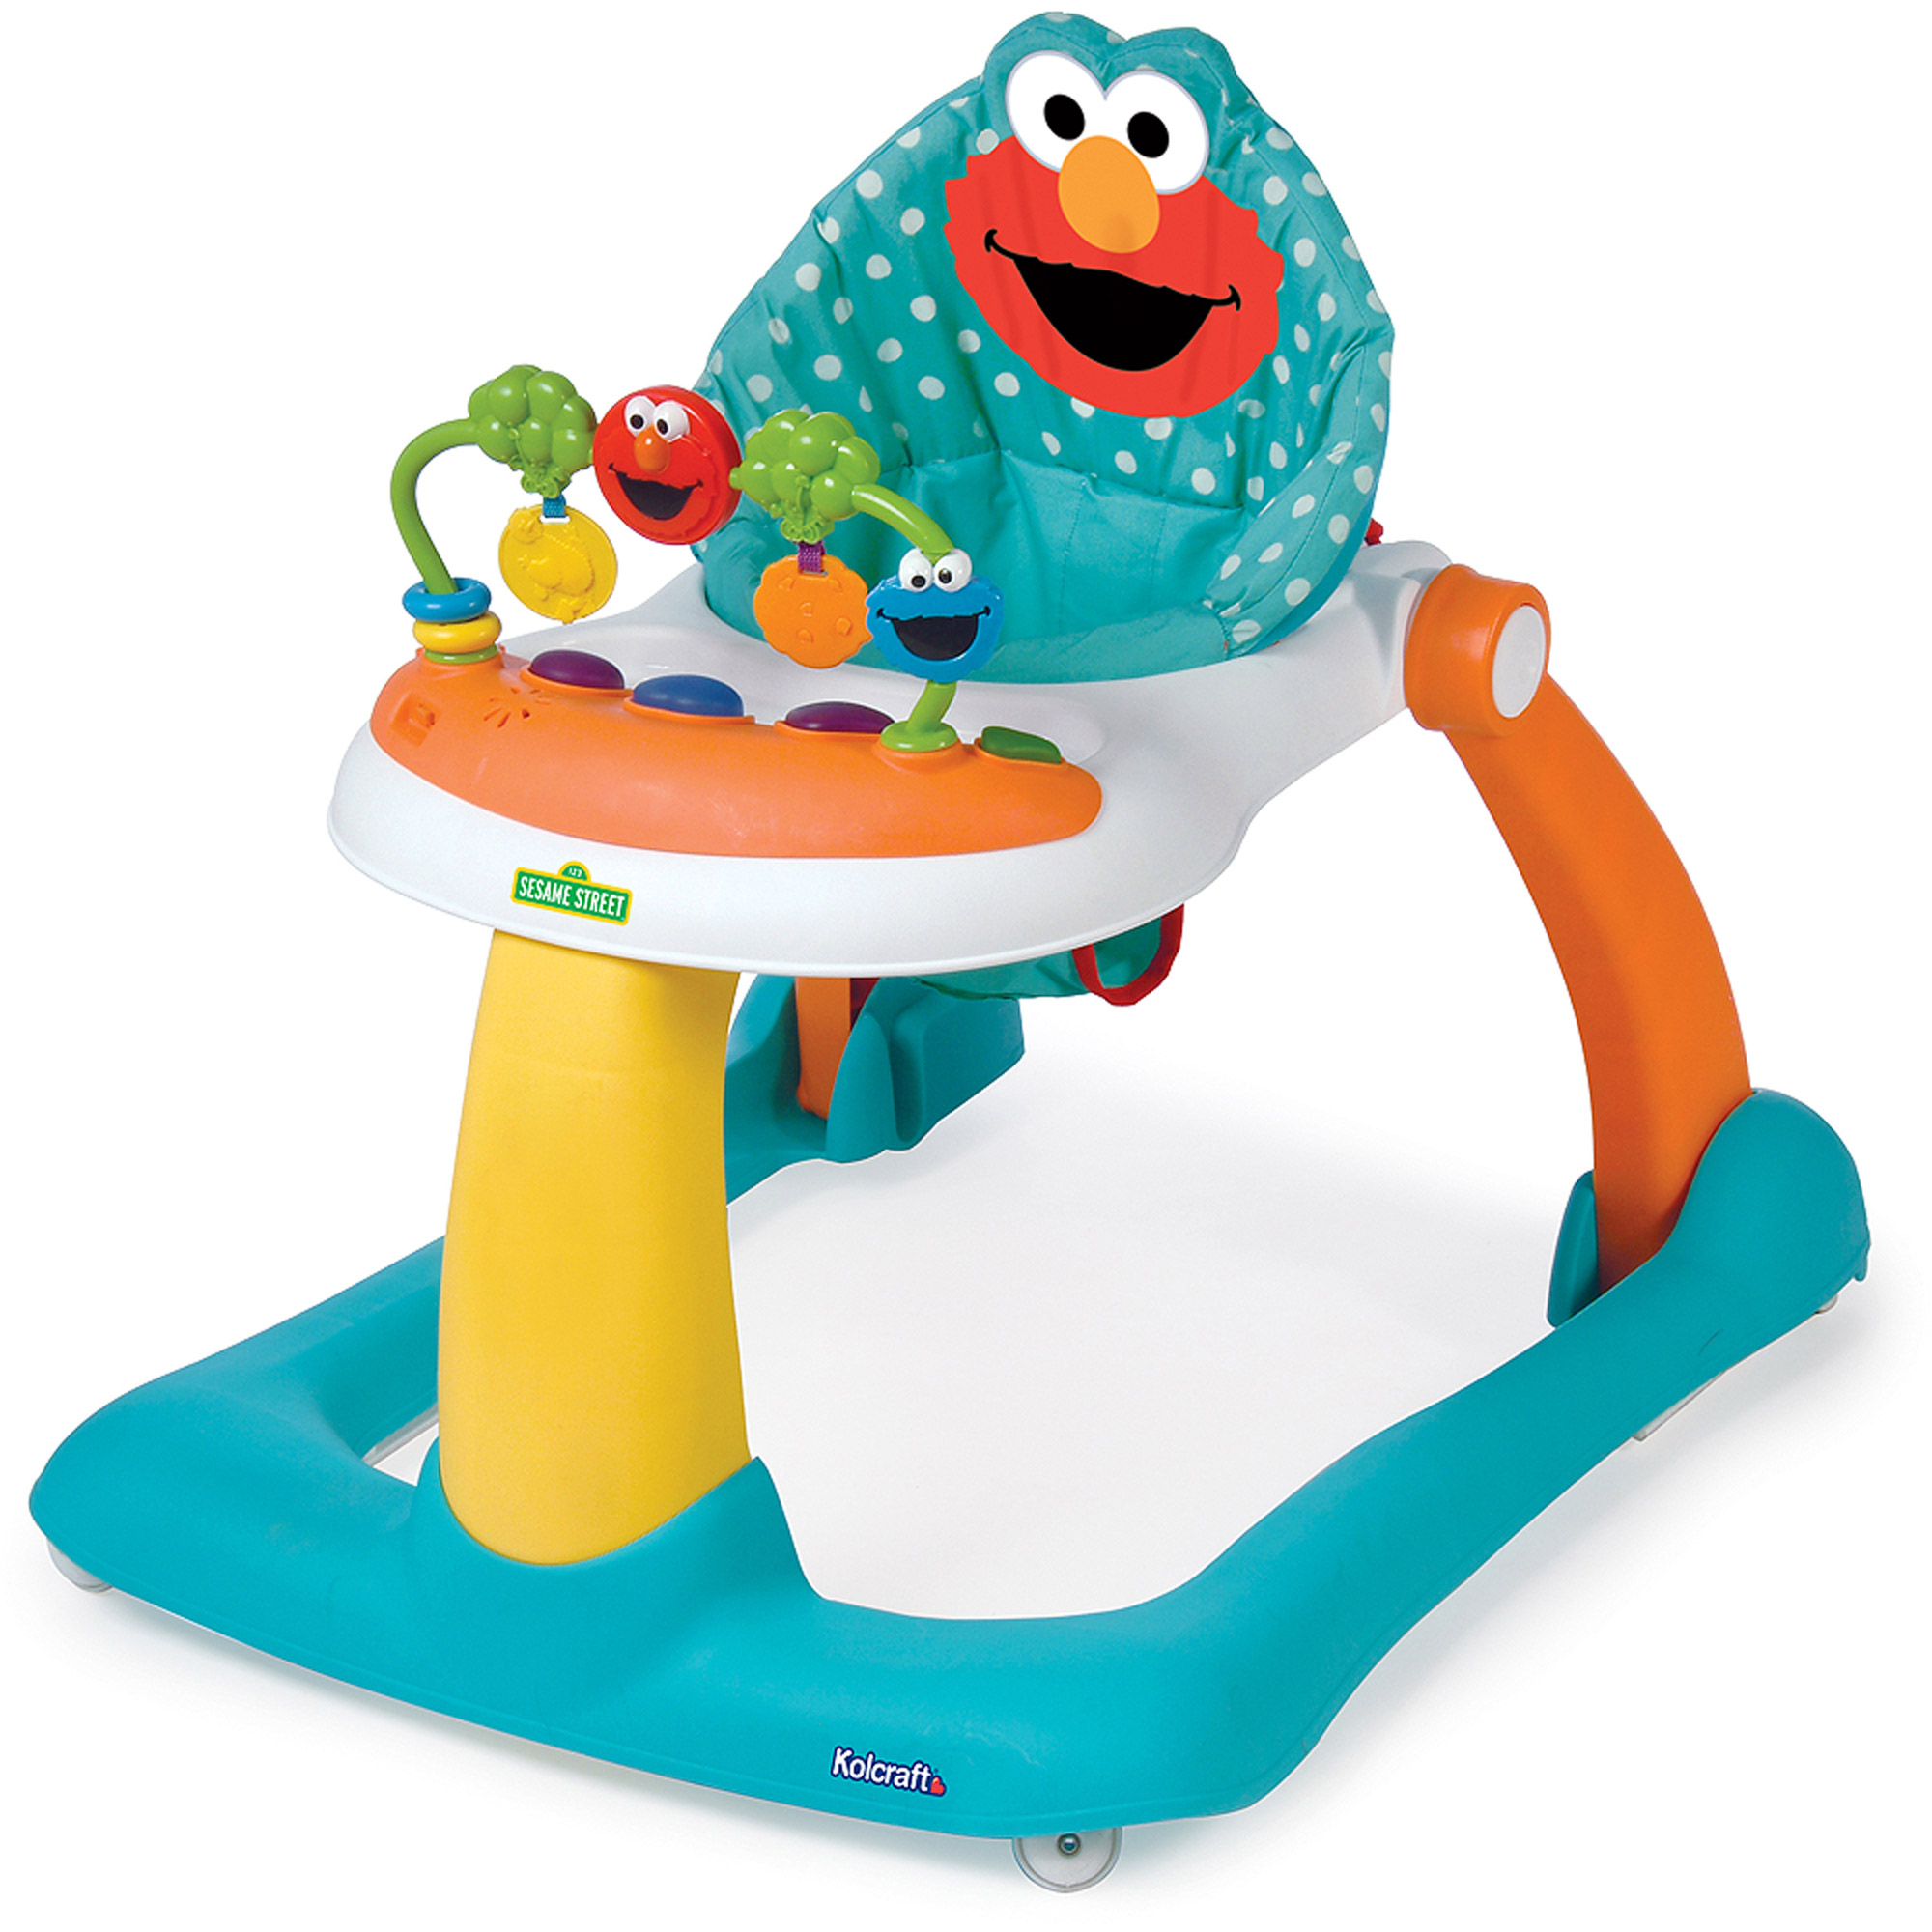 Sesame Street Elmo 2-in-1 Activity Walker